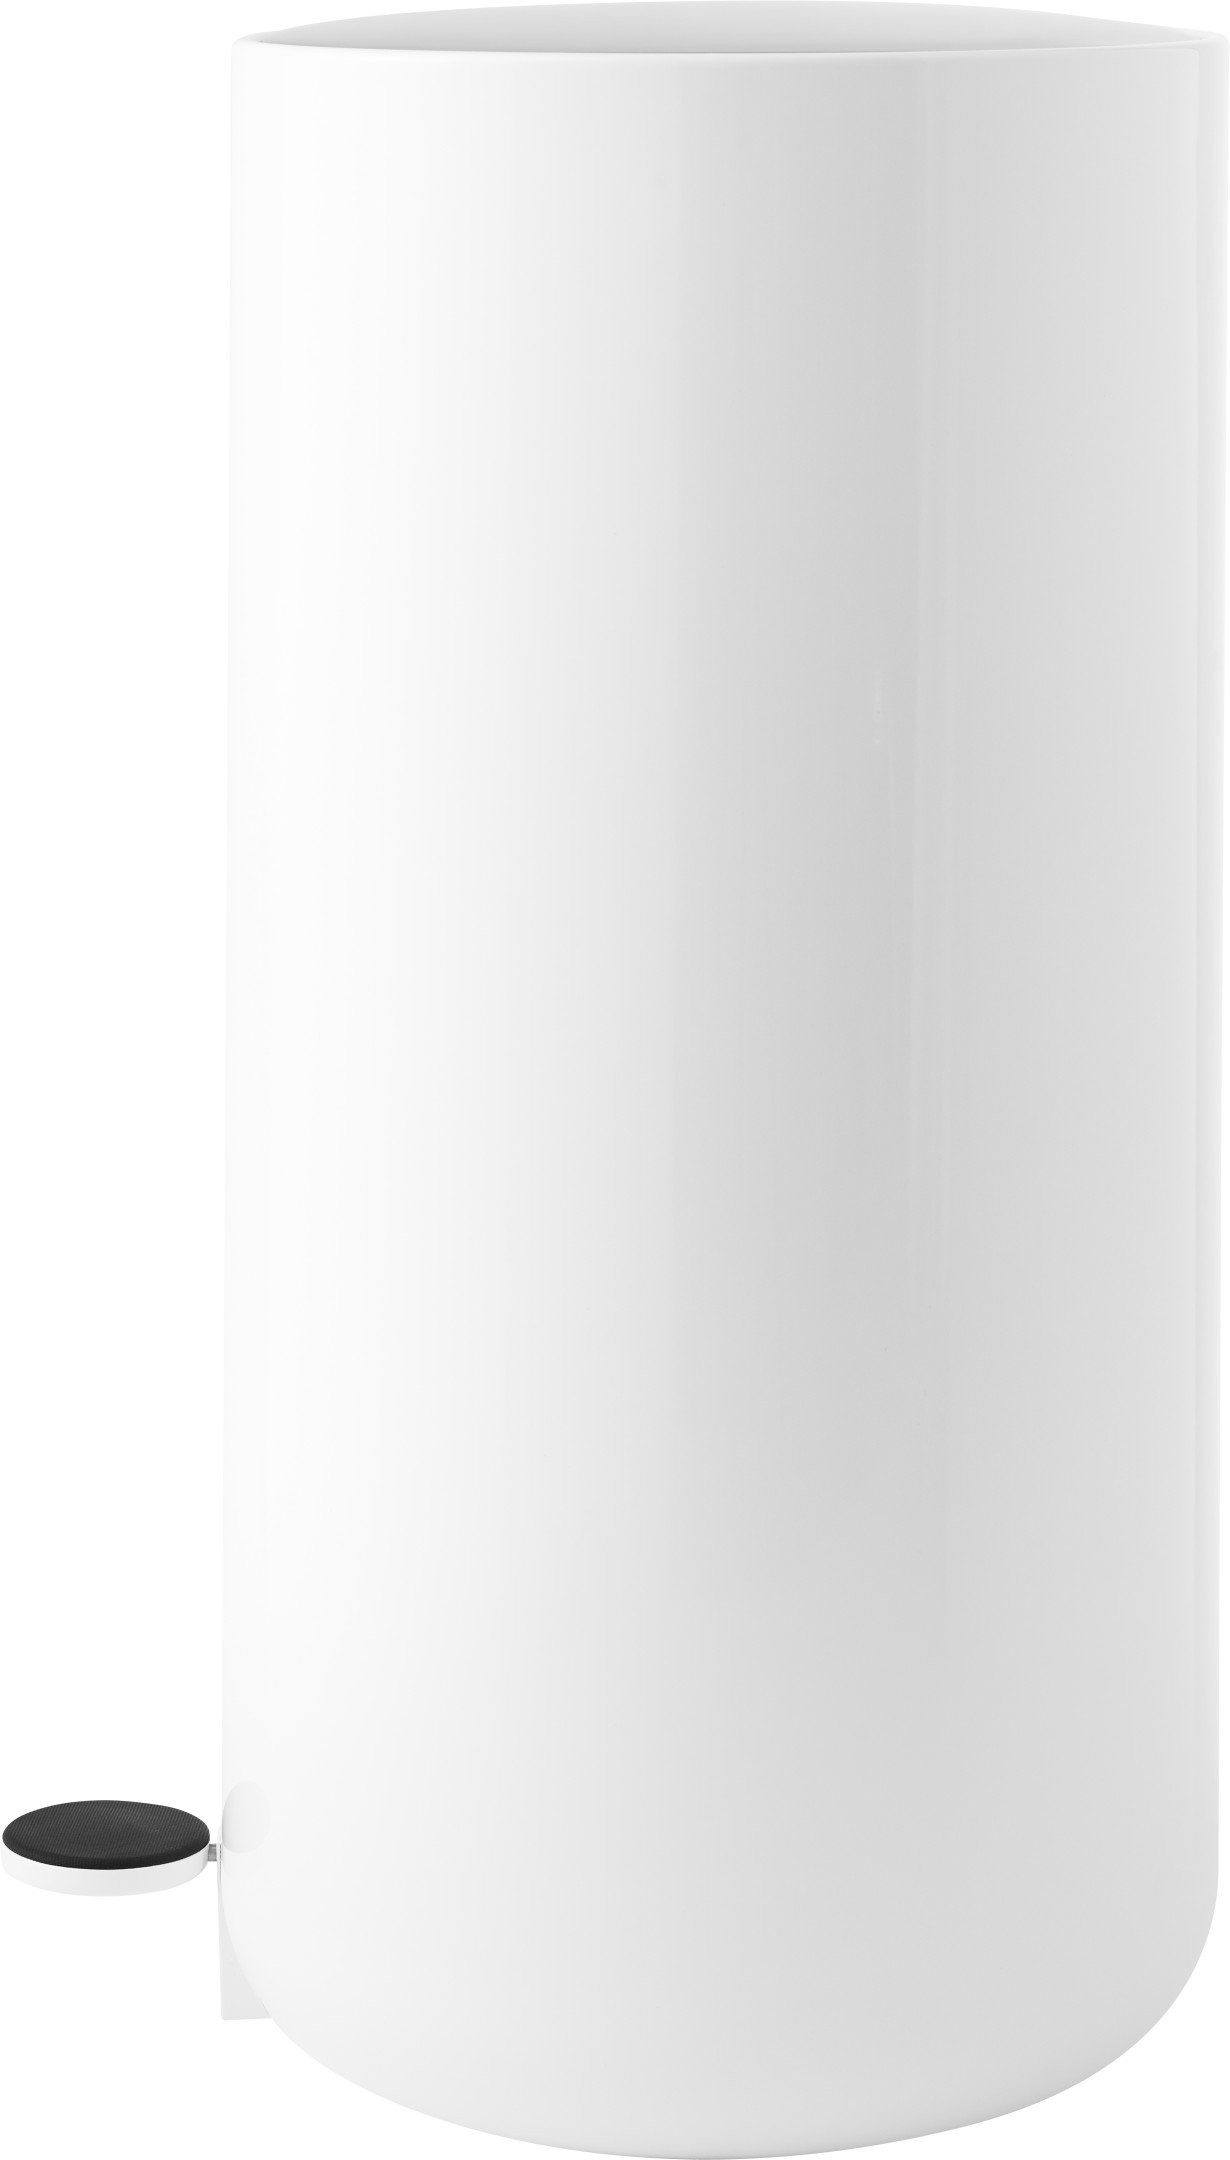 Pedal Bin, 11l, White, by Norm Architects for Menu